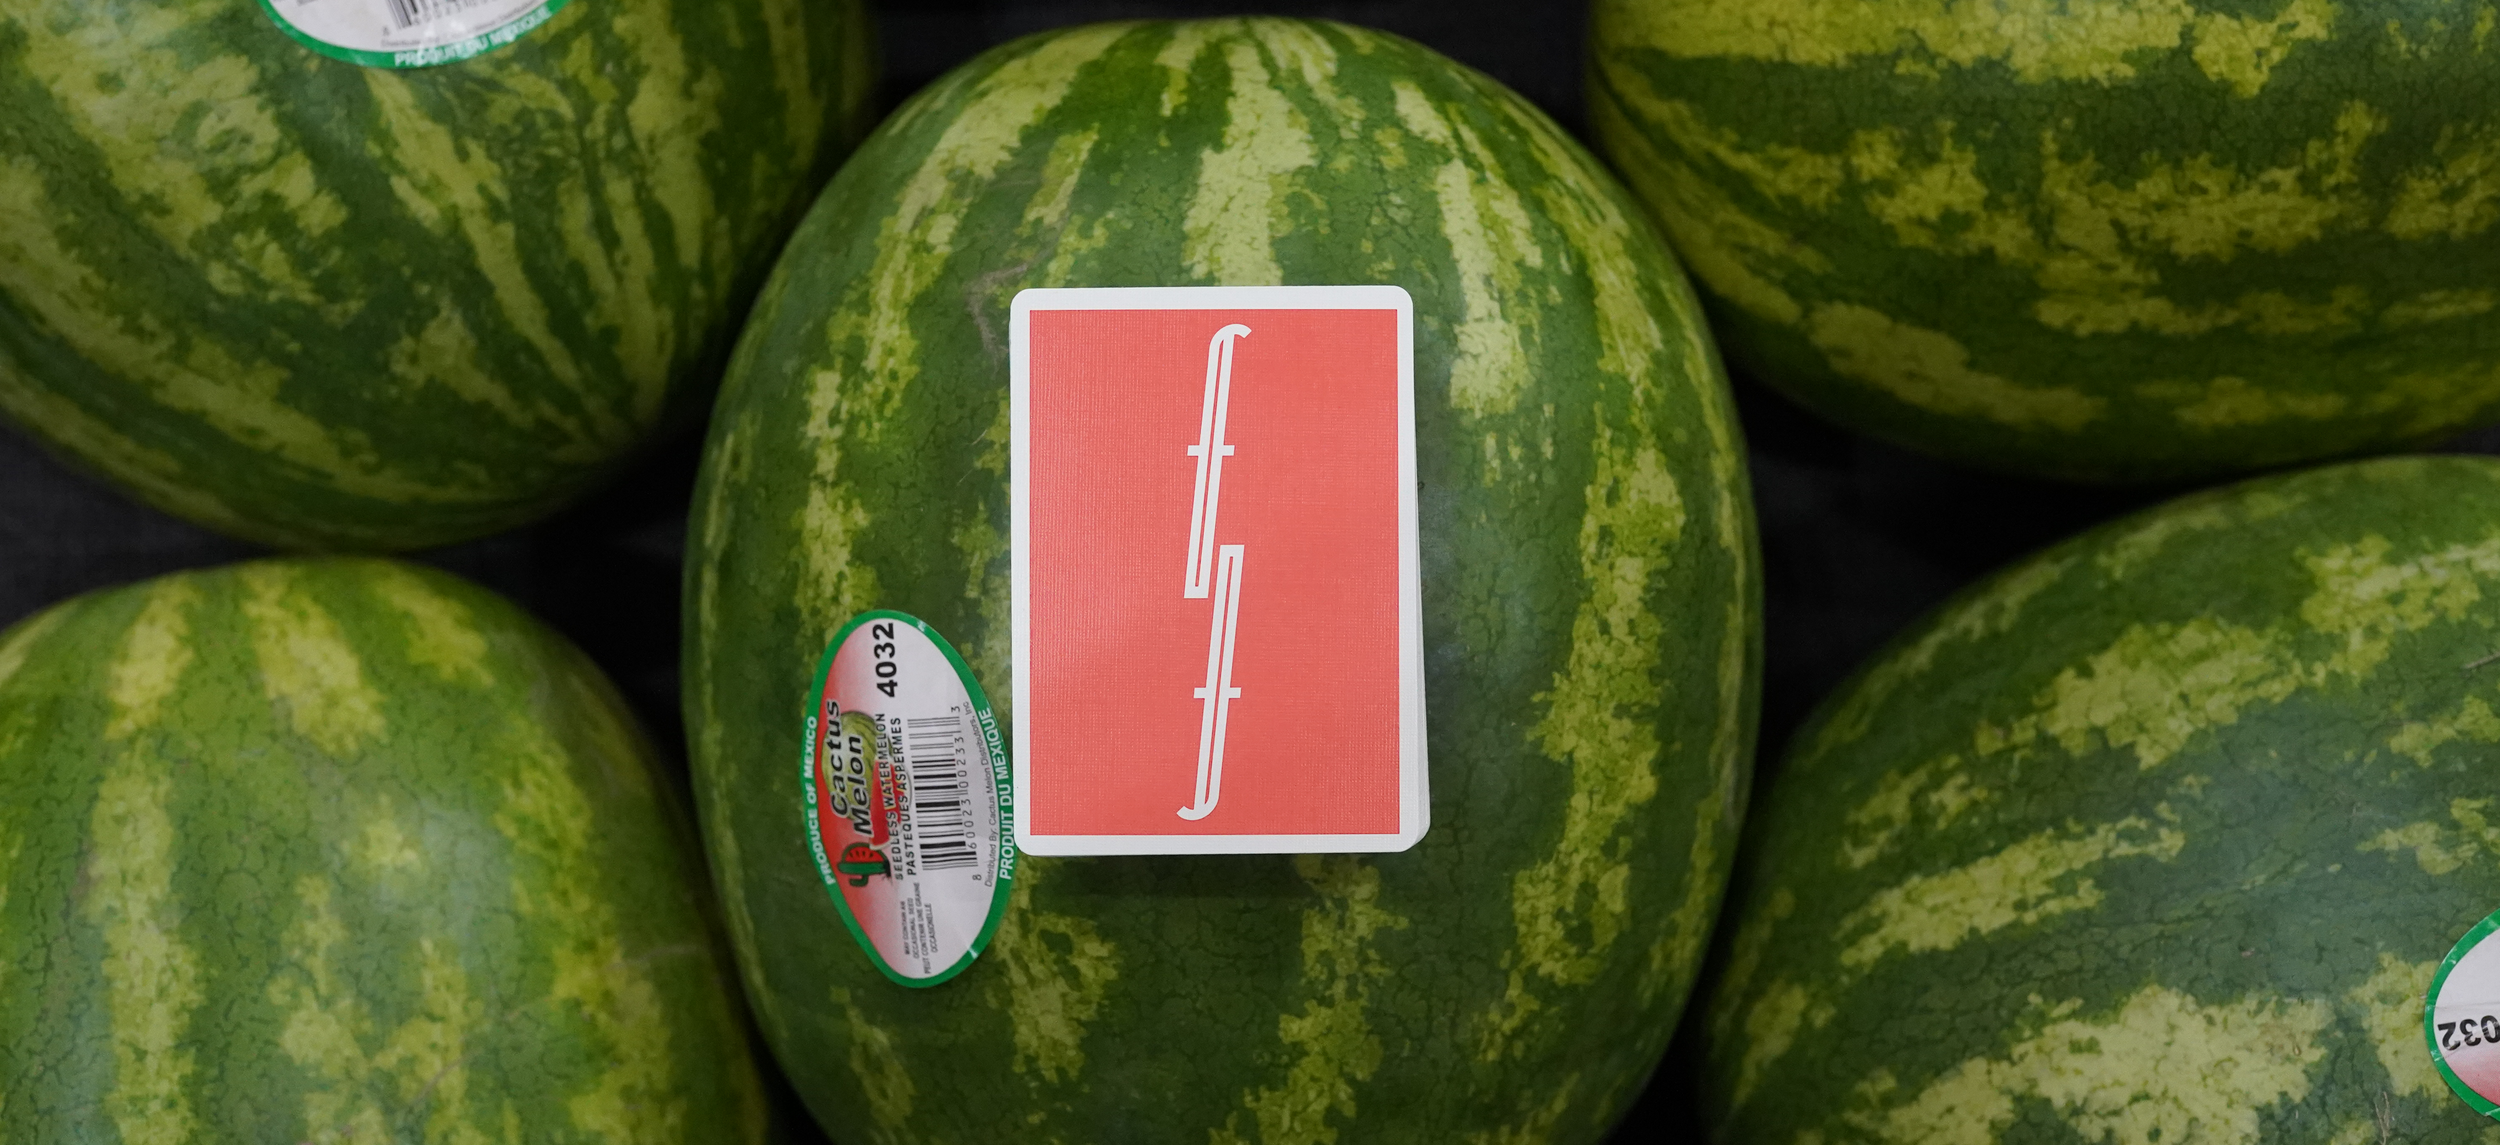 watermelontainewideshot_lighter_banner.png